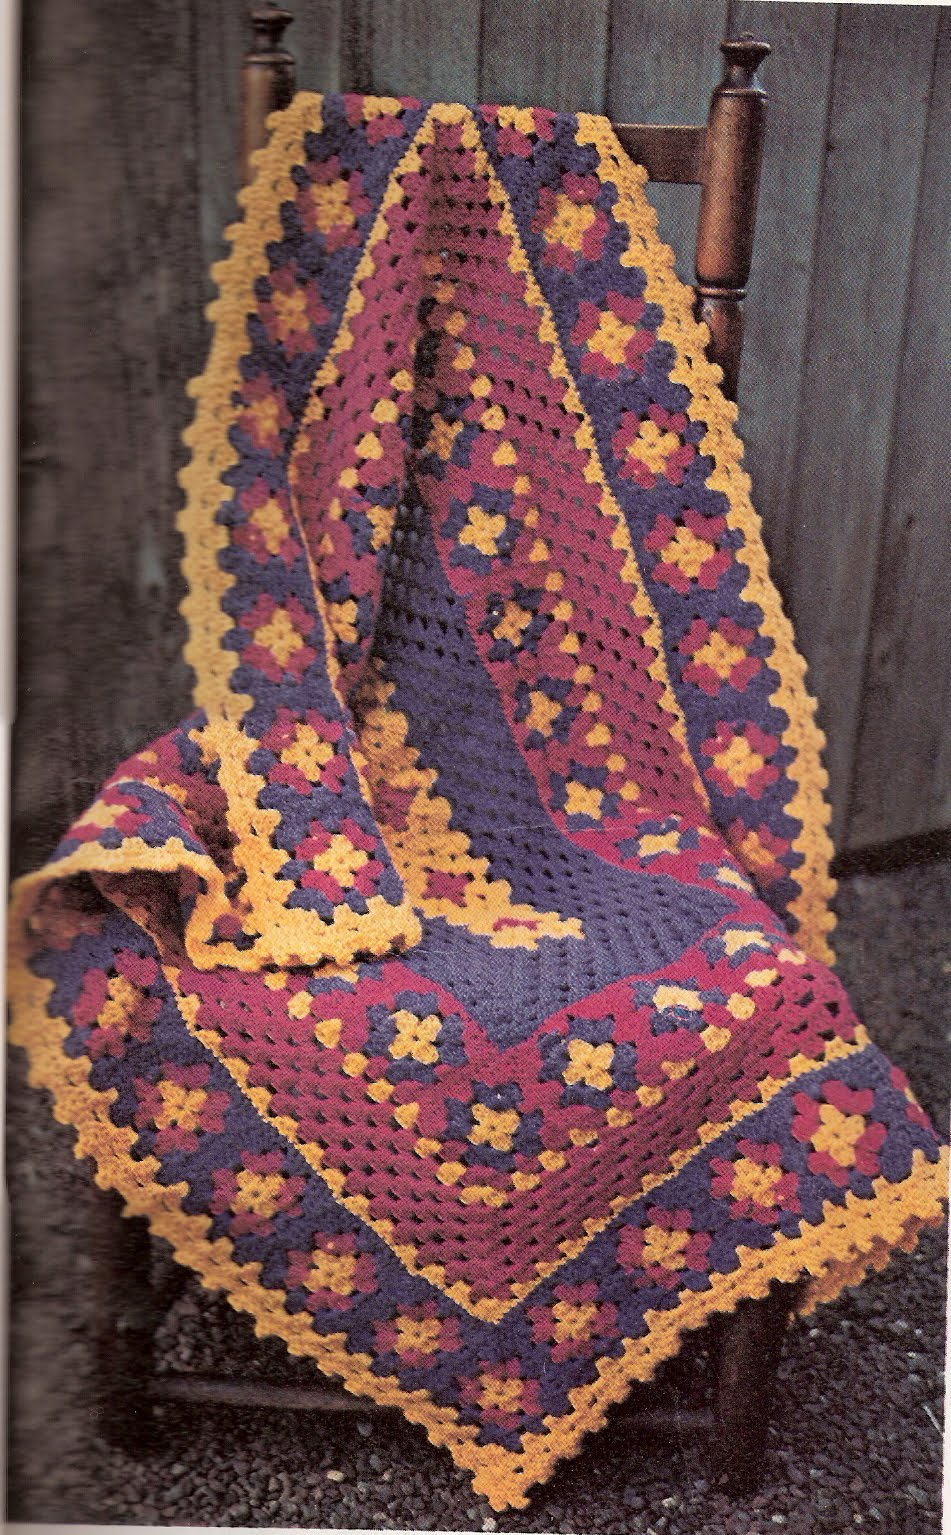 Crochet Patterns Granny Square Baby Blankets : crochet blanket crochet blanket pattern crochet blanket patterns ...